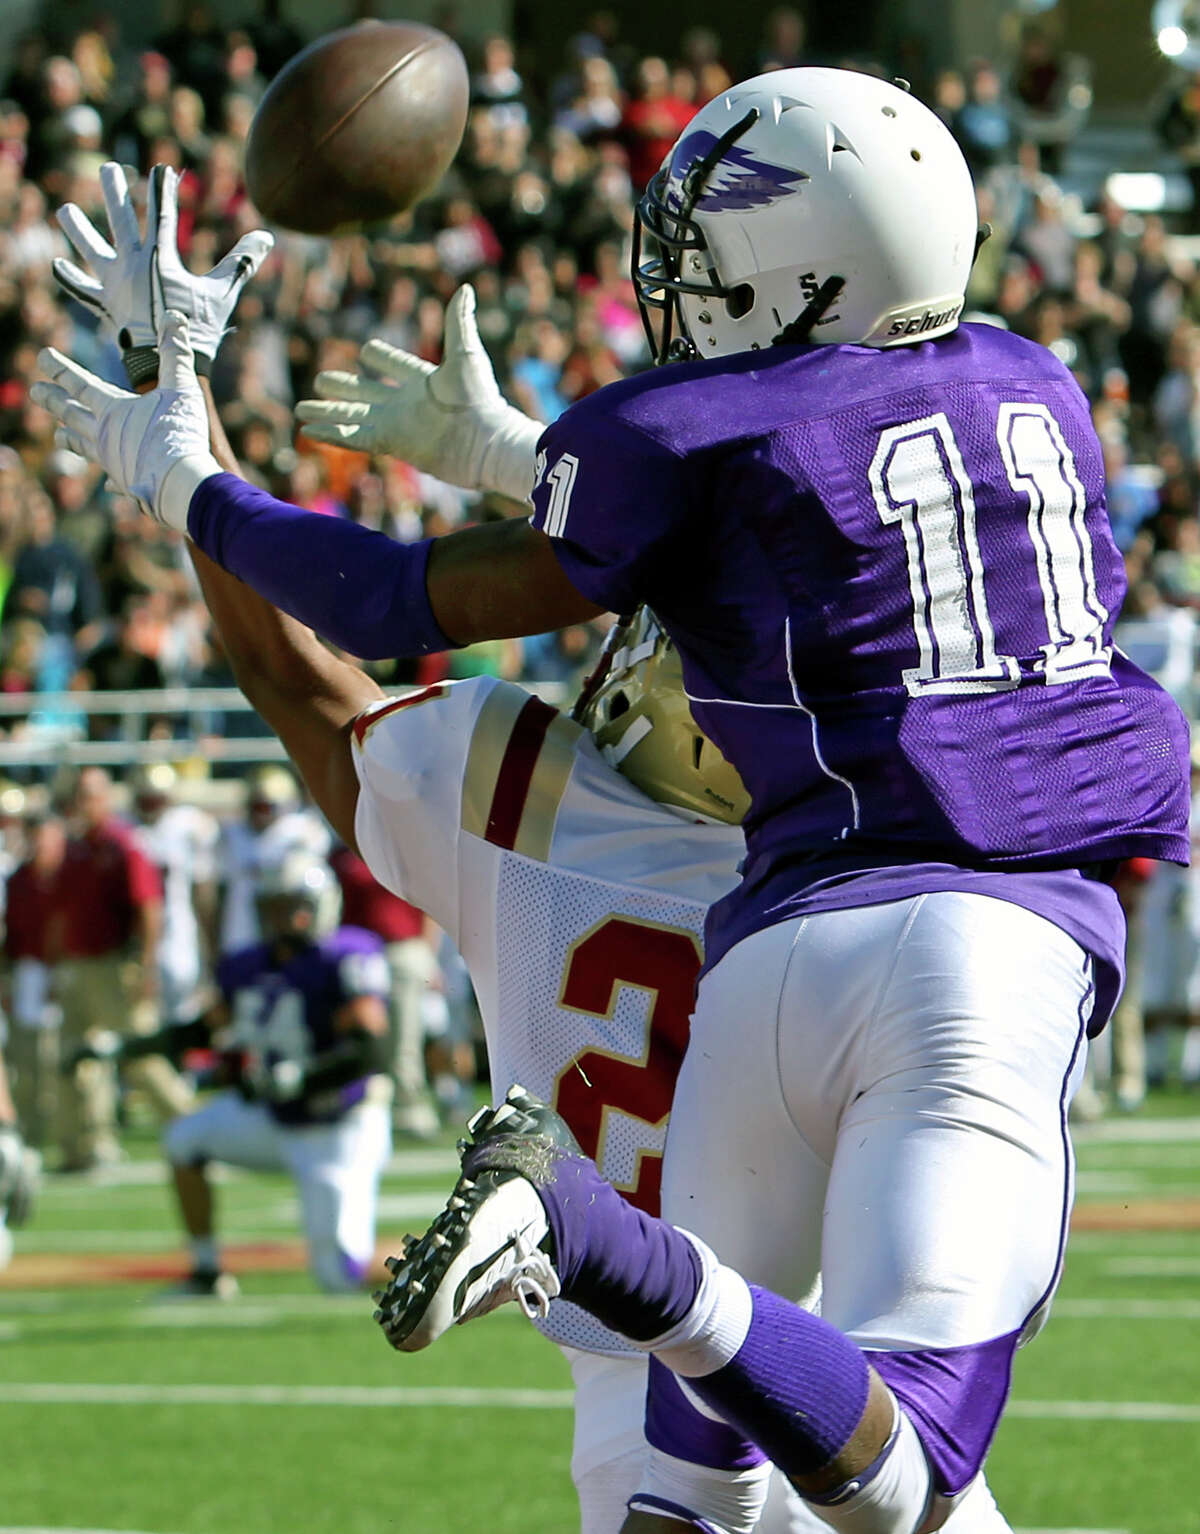 Wide receiver Montae Whorton grabs a touchdown pass over Raider defender Chris Hendricks in the first half as Brackenridge loses to Leander Rouse 35-14 at Bobcat Stadium in SanMarcos on November 24, 2012.